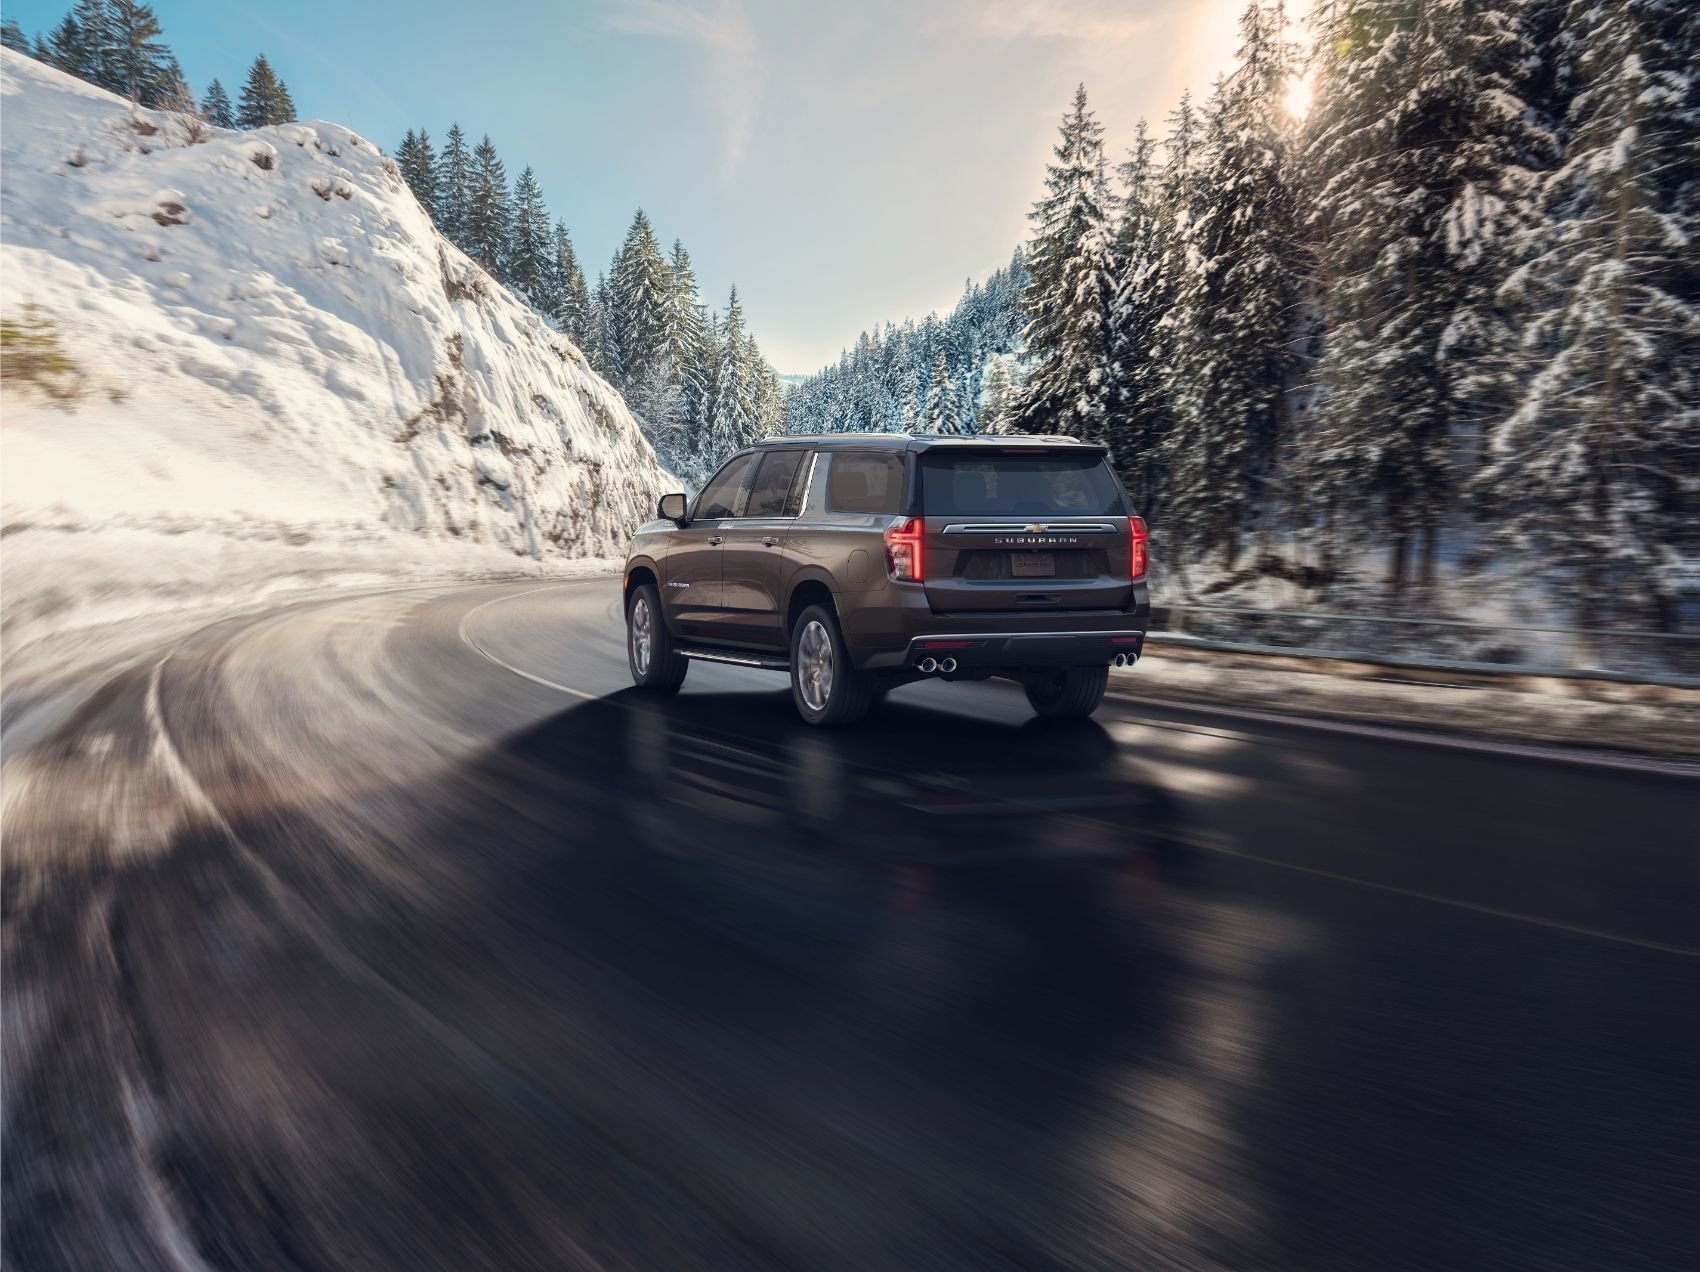 2021 Chevy Suburban & Tahoe: GM's Newest SUVs Come To Town!